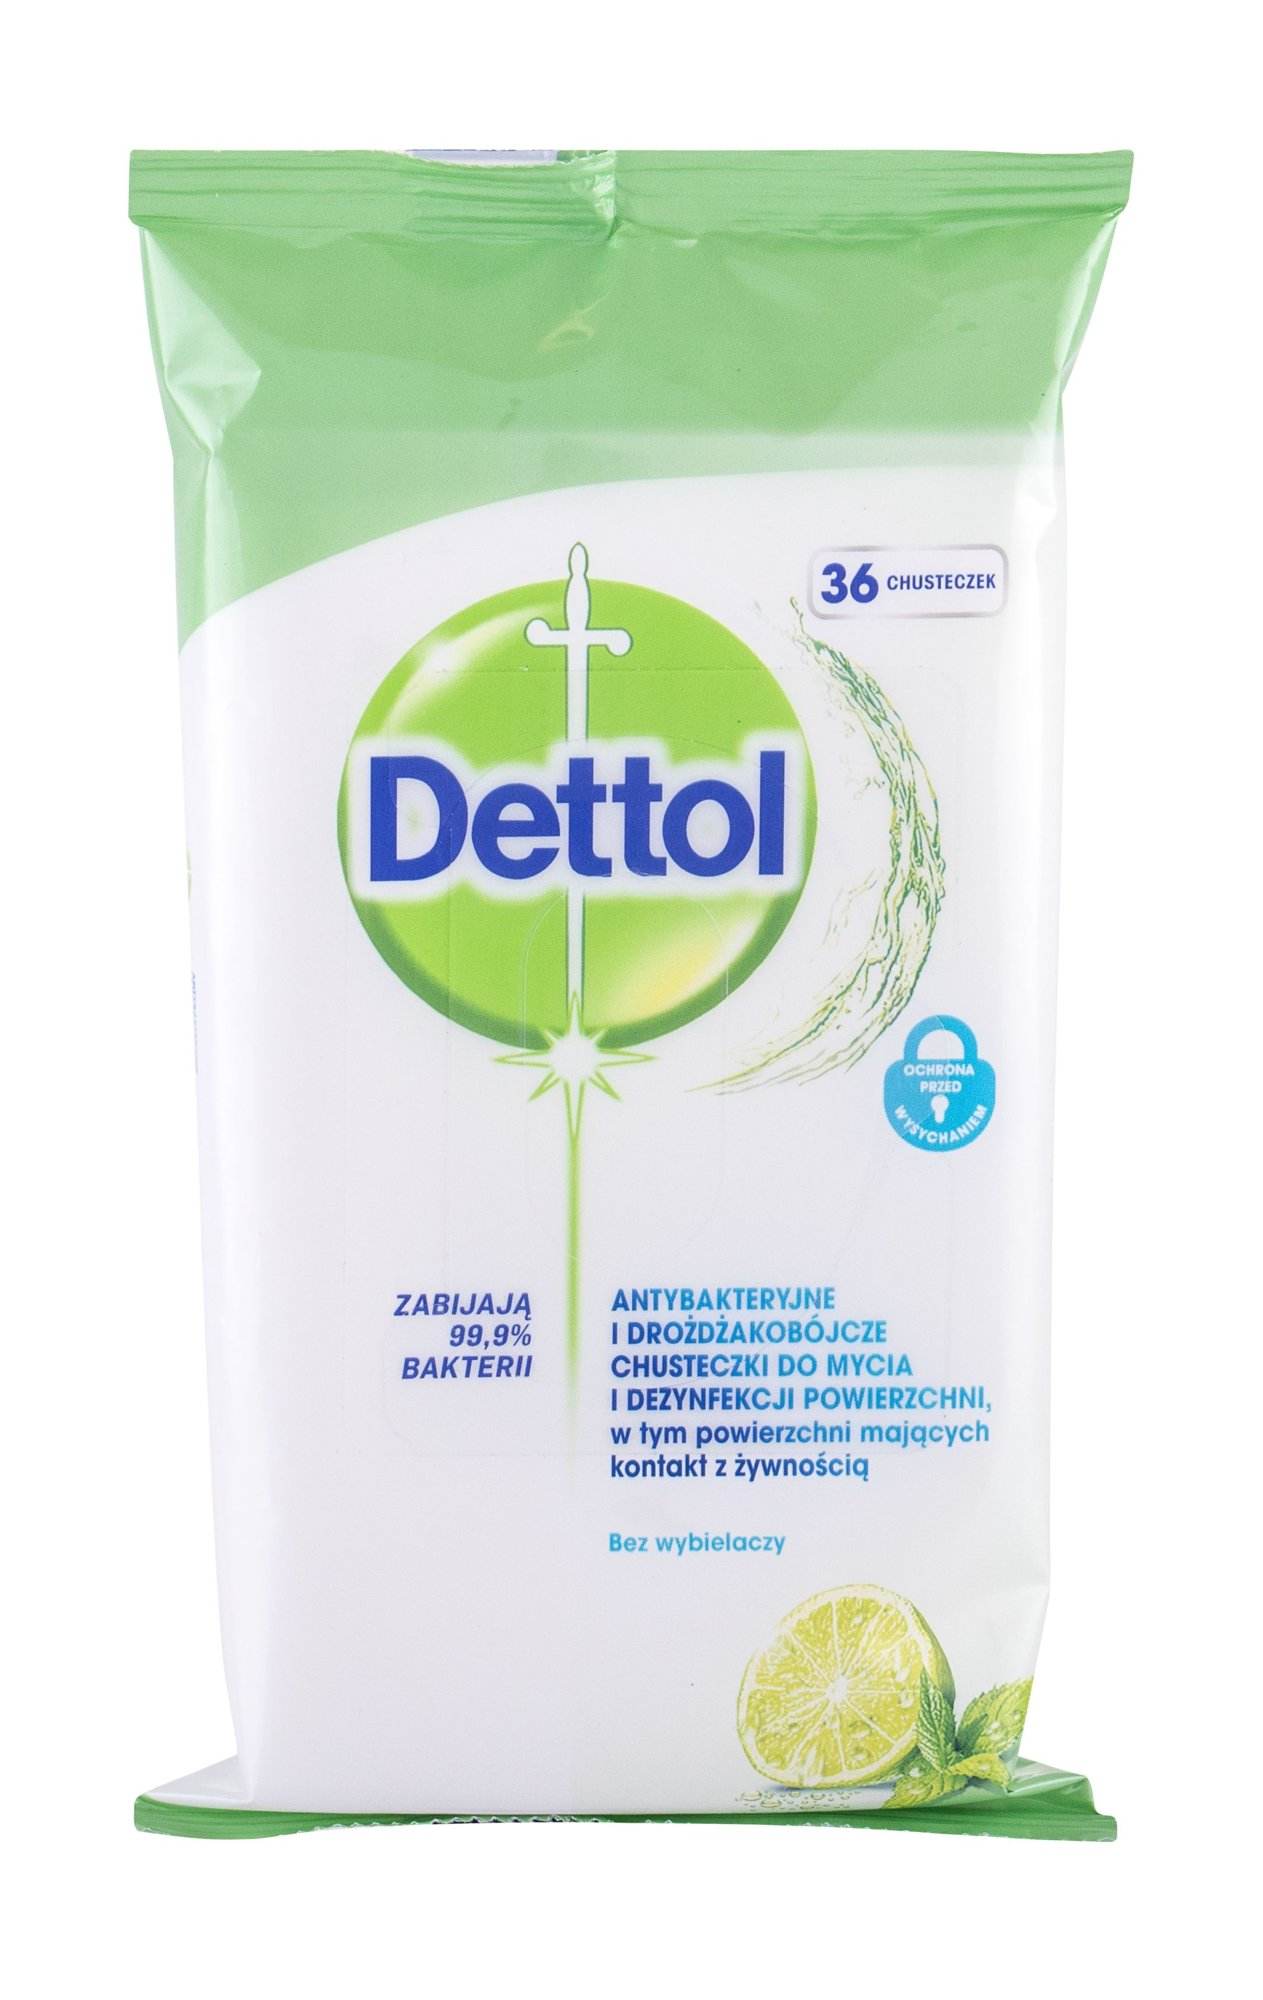 Dettol Antibacterial Antibacterial Gel 36ml  Cleansing Surface Wipes